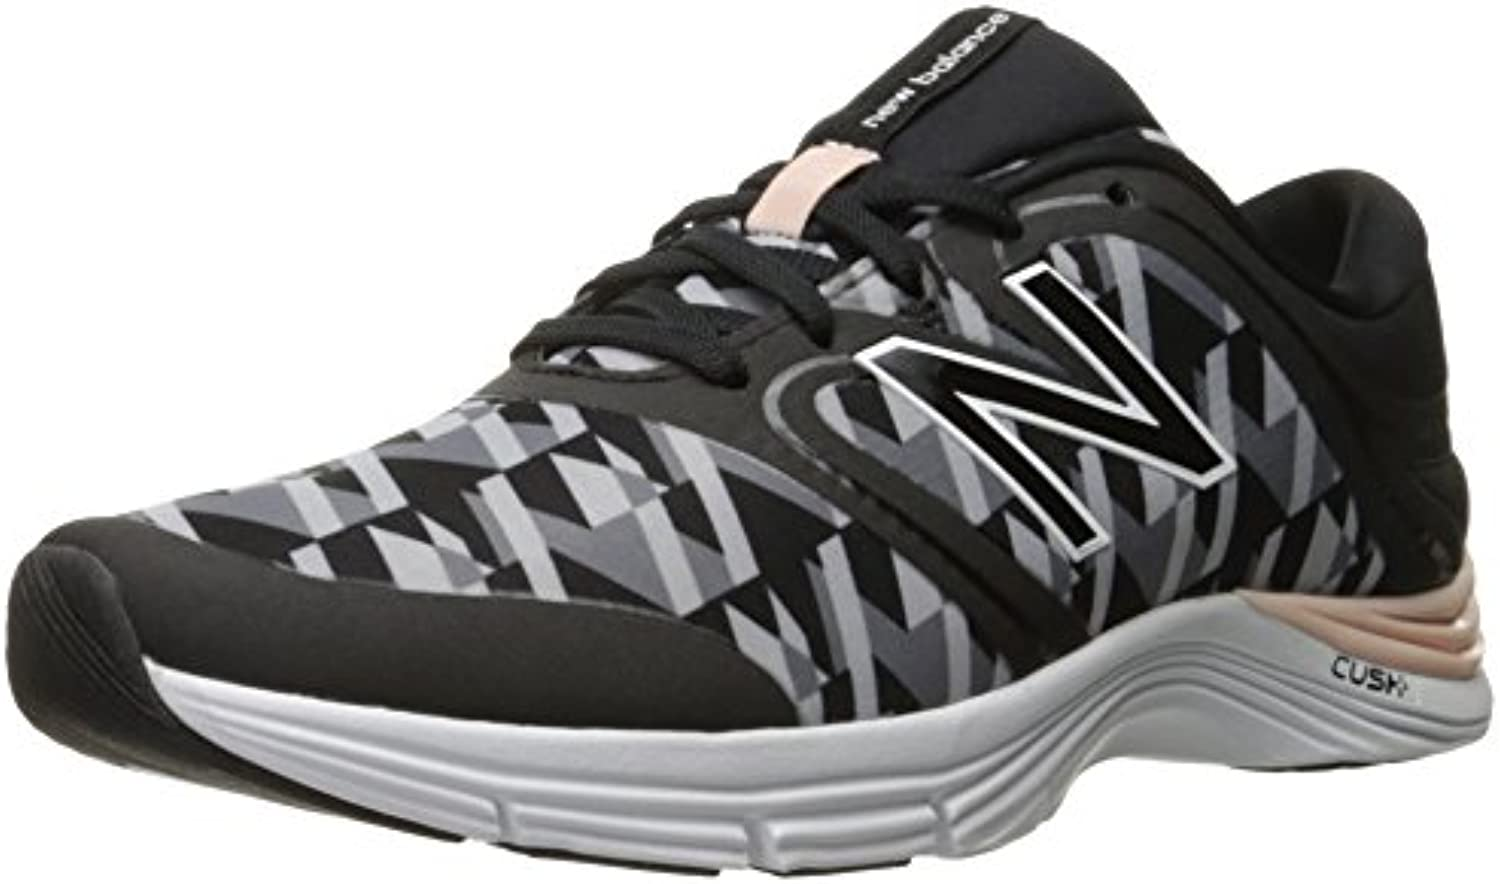 New Balance Women's 711v1 Training Shoe, Black/Graphic, EU 40.5